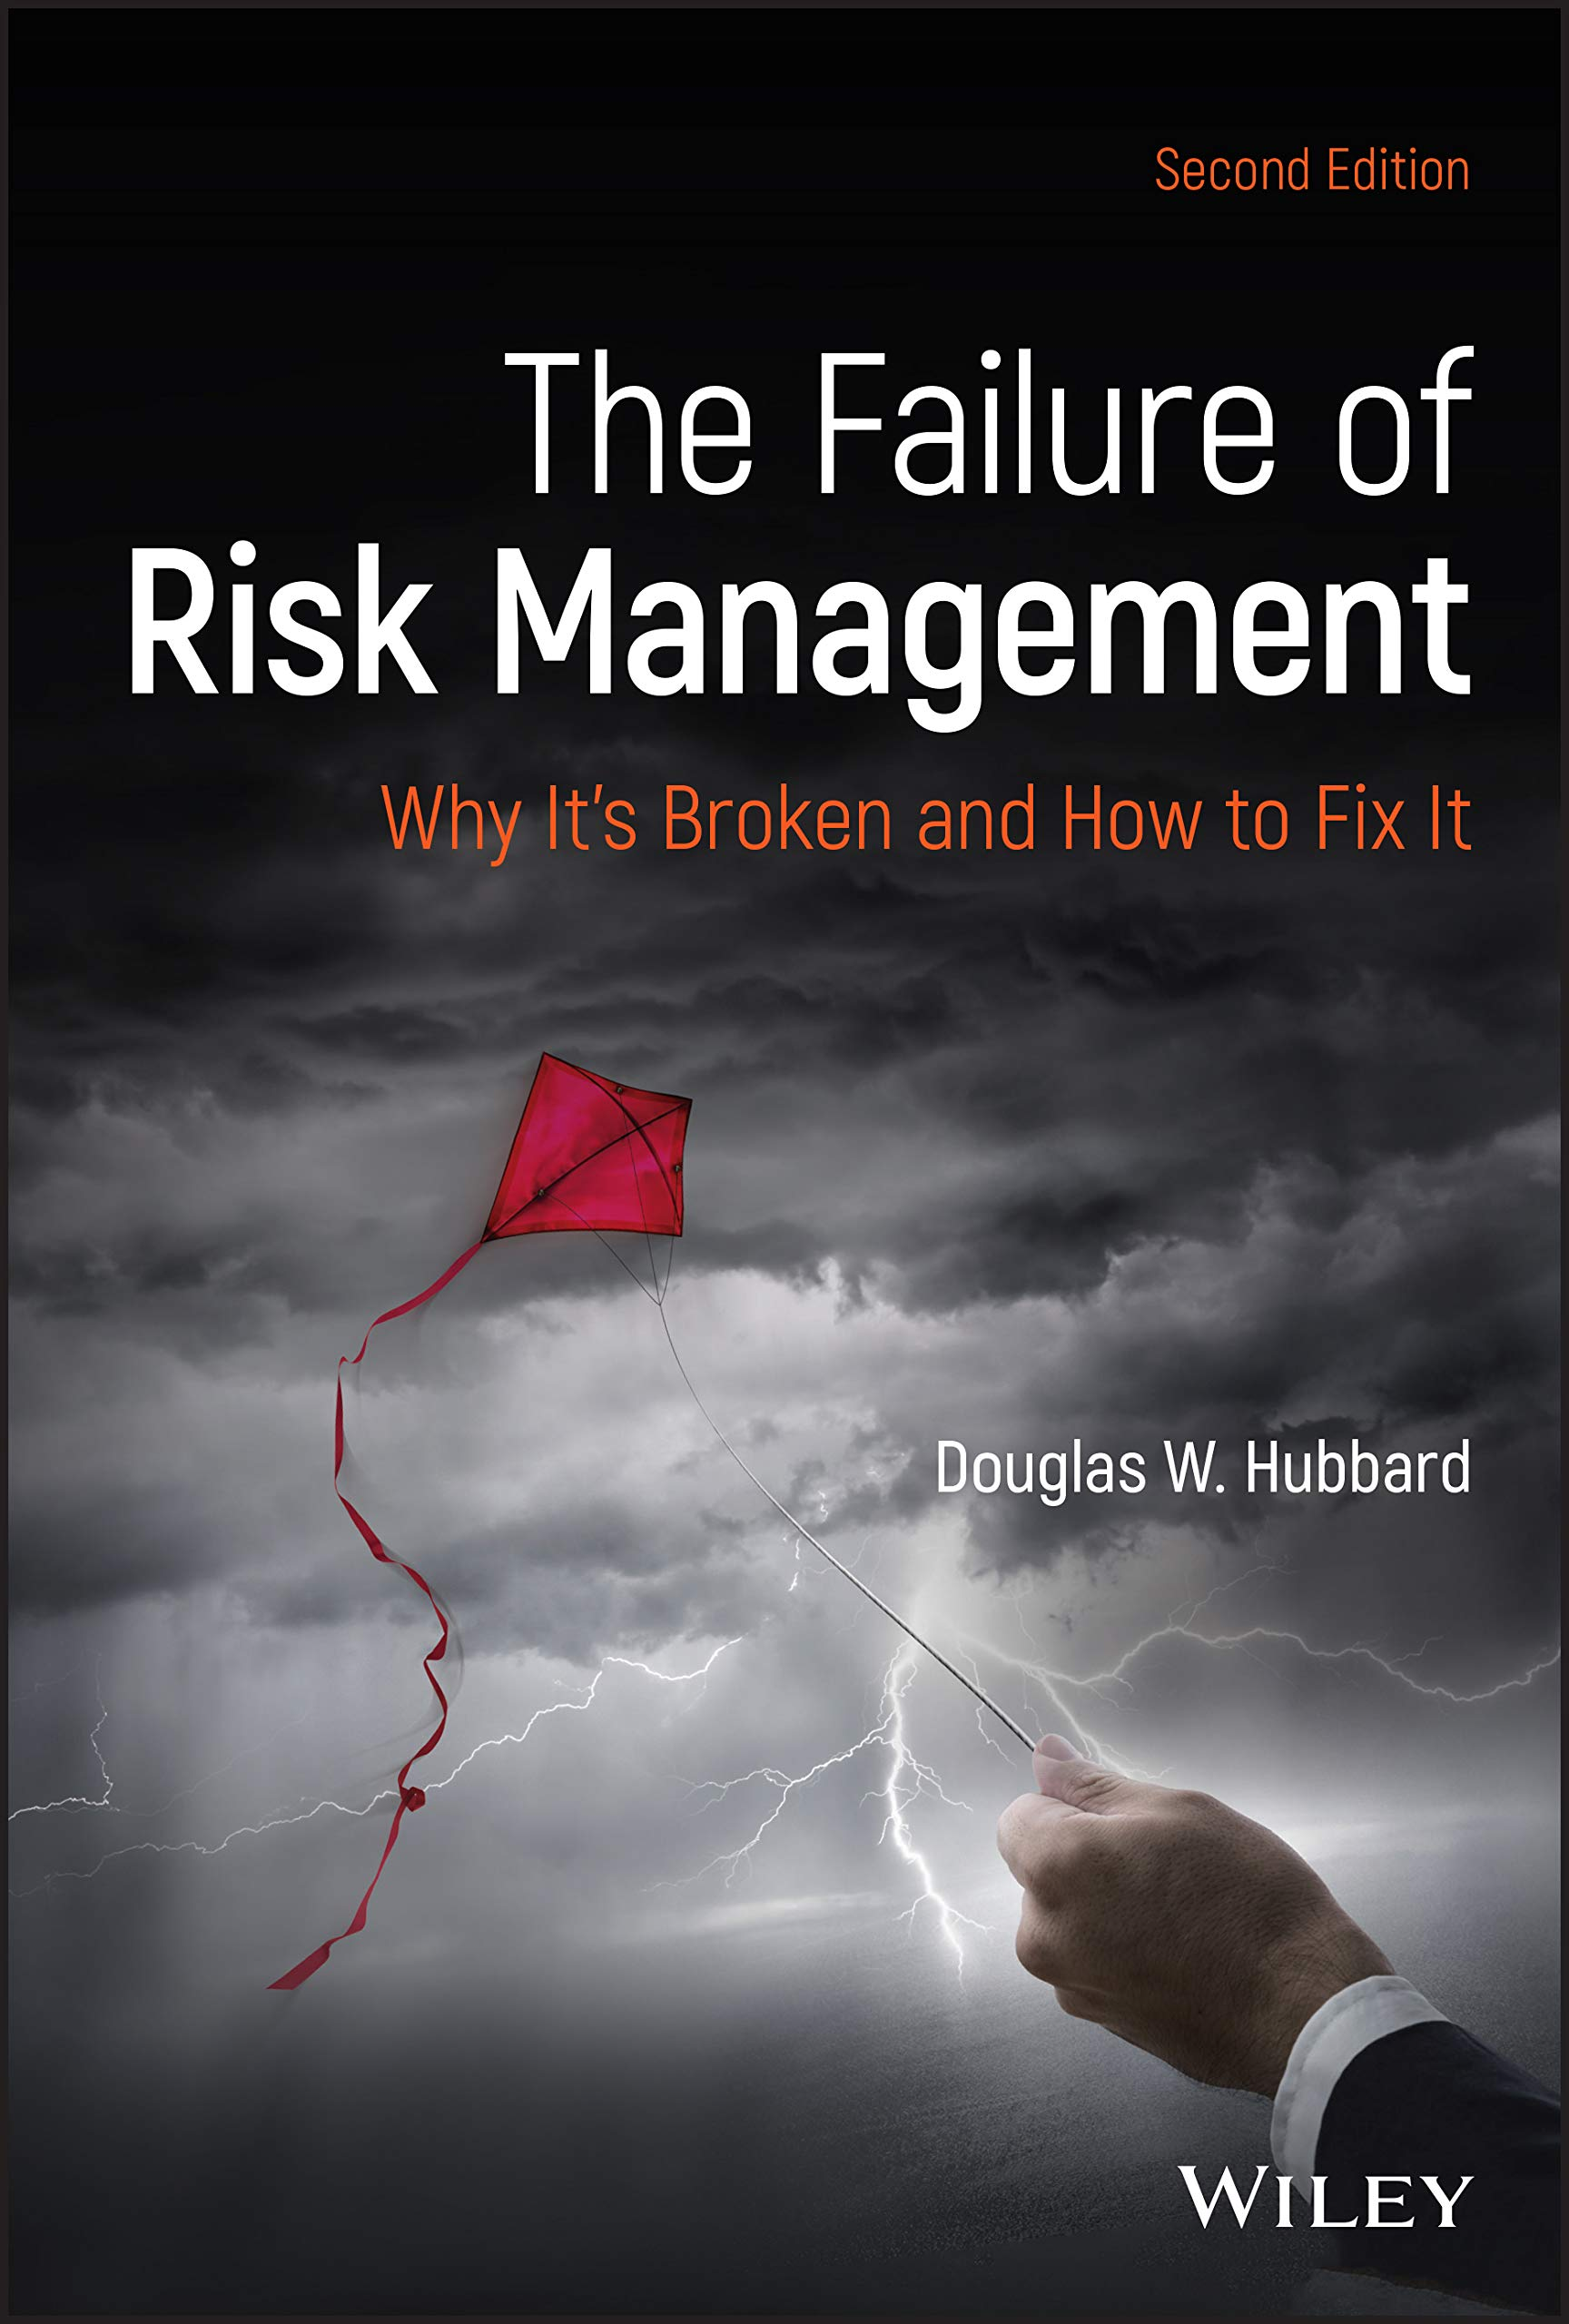 Image OfThe Failure Of Risk Management: Why It's Broken And How To Fix It